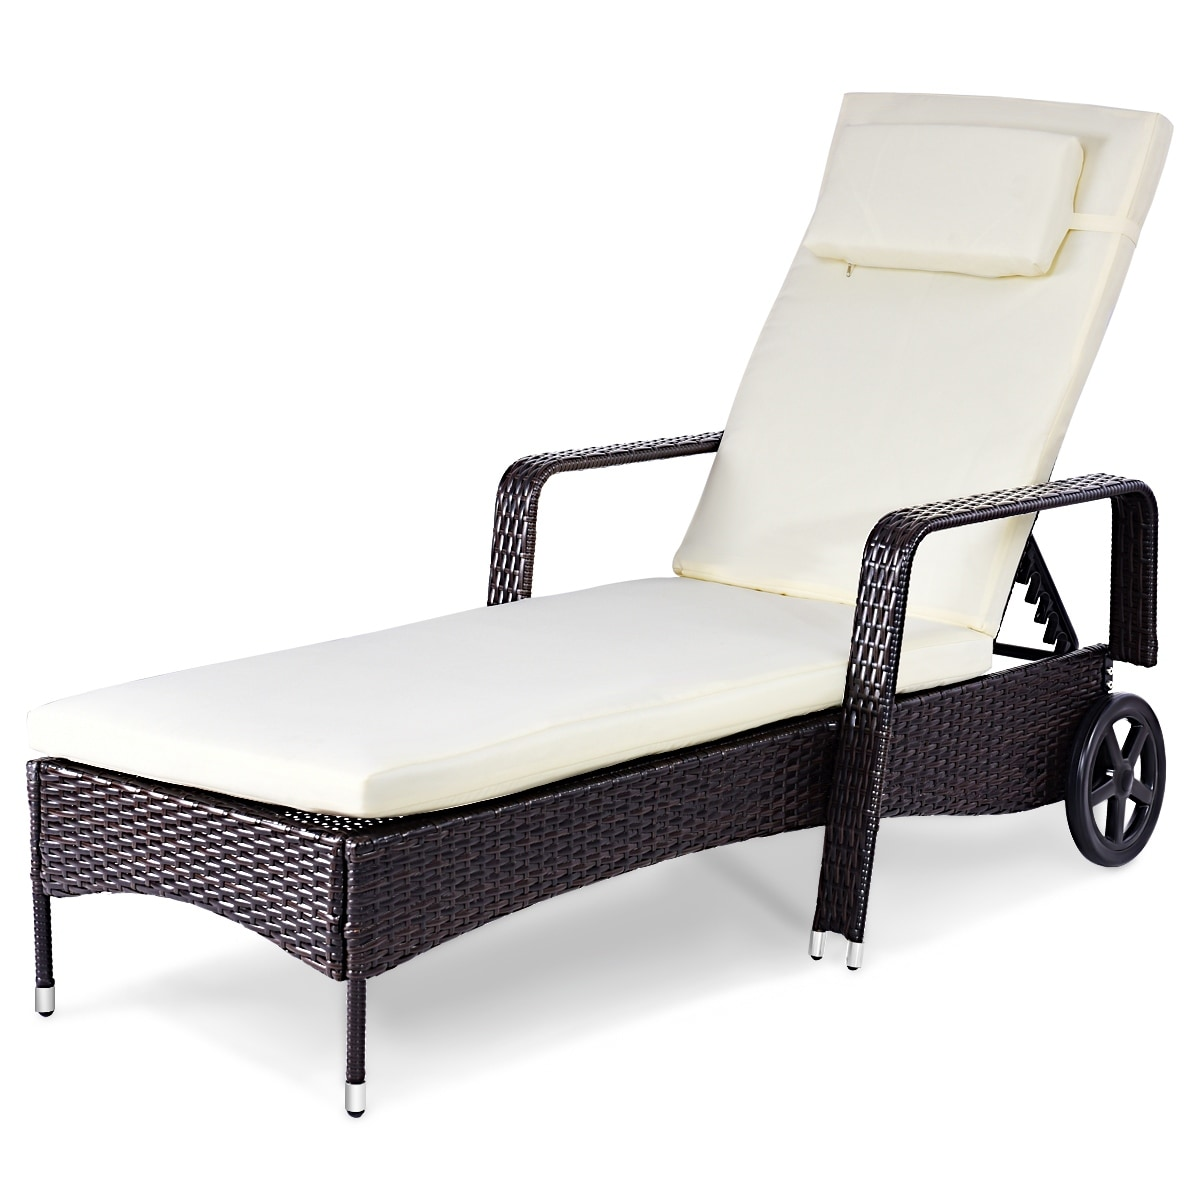 Magnificent Costway Outdoor Chaise Lounge Chair Recliner Cushioned Patio Furniture Adjustable Wheels Inzonedesignstudio Interior Chair Design Inzonedesignstudiocom